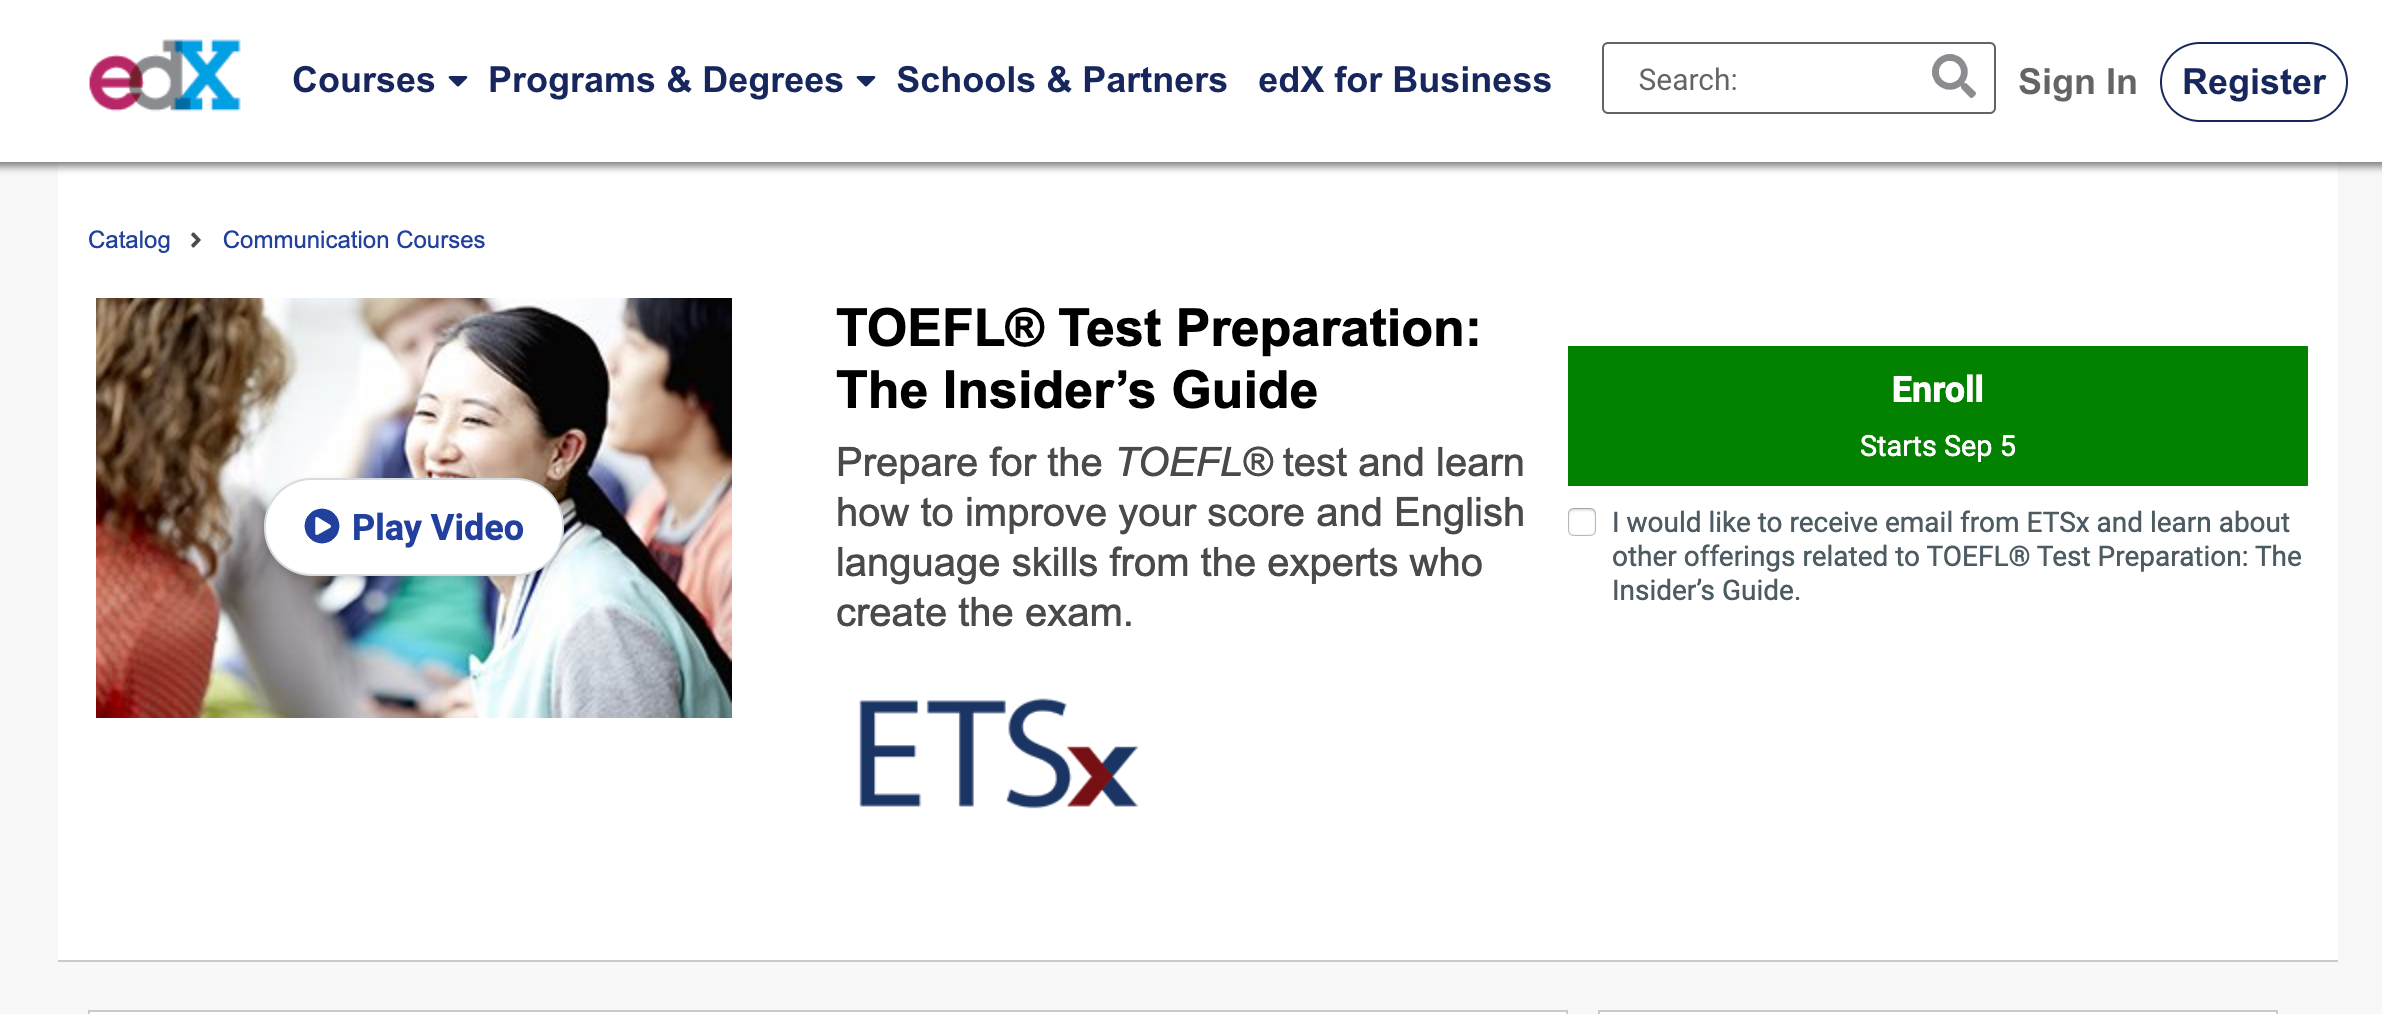 edX TOEFL- Best Place for TOEFL FREE